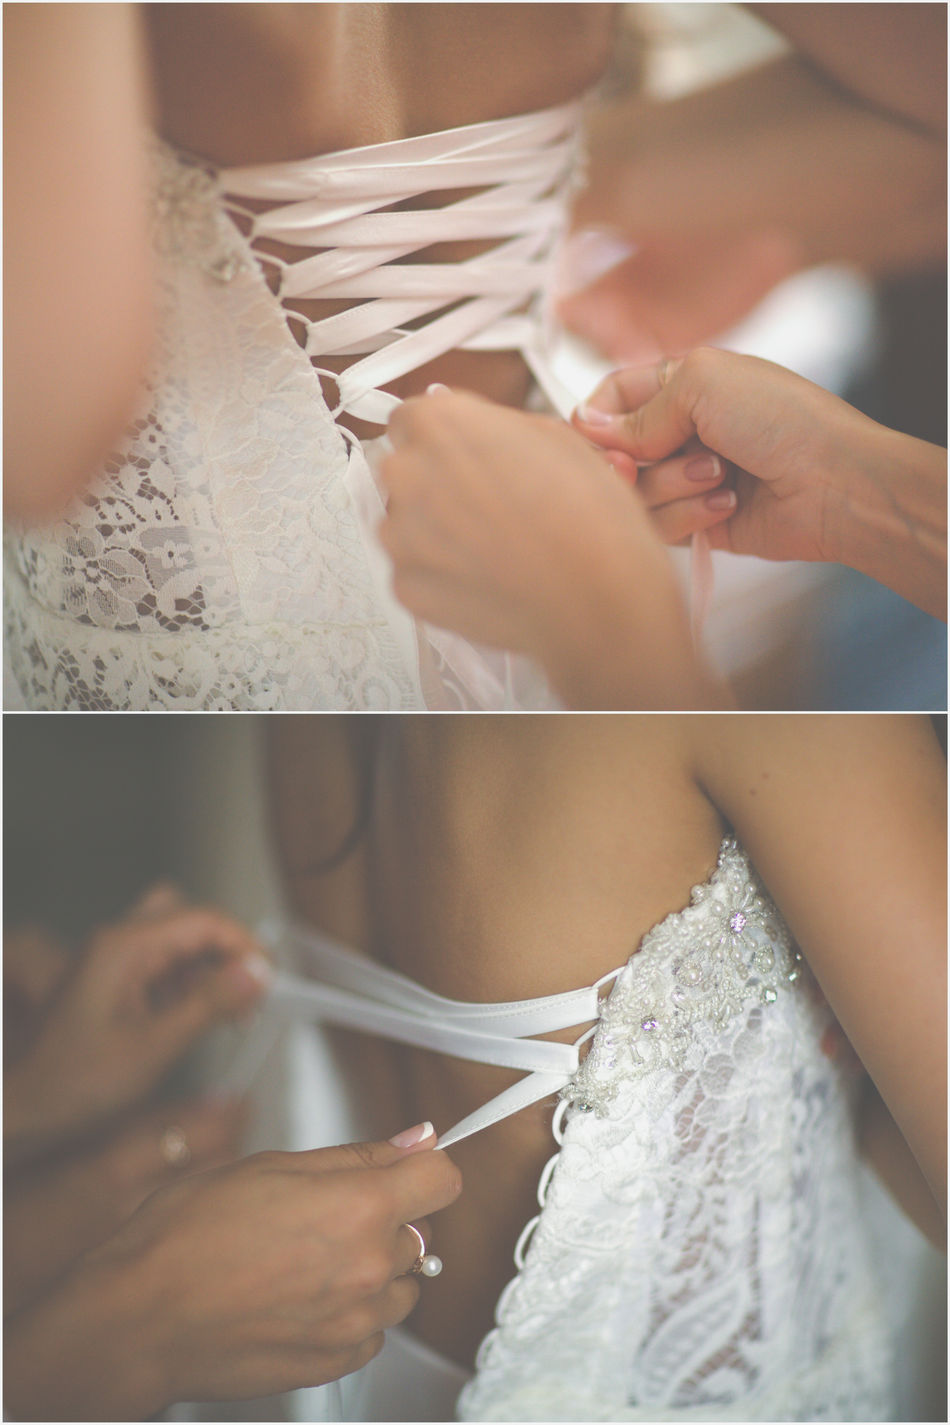 Bride Cute Decorations Details Dressing Up France French Human Hand Indoors  Indoors  Lace Morning Paris Preparations Tender Wedding Wedding Day Wedding Dress Wedding Photography Women